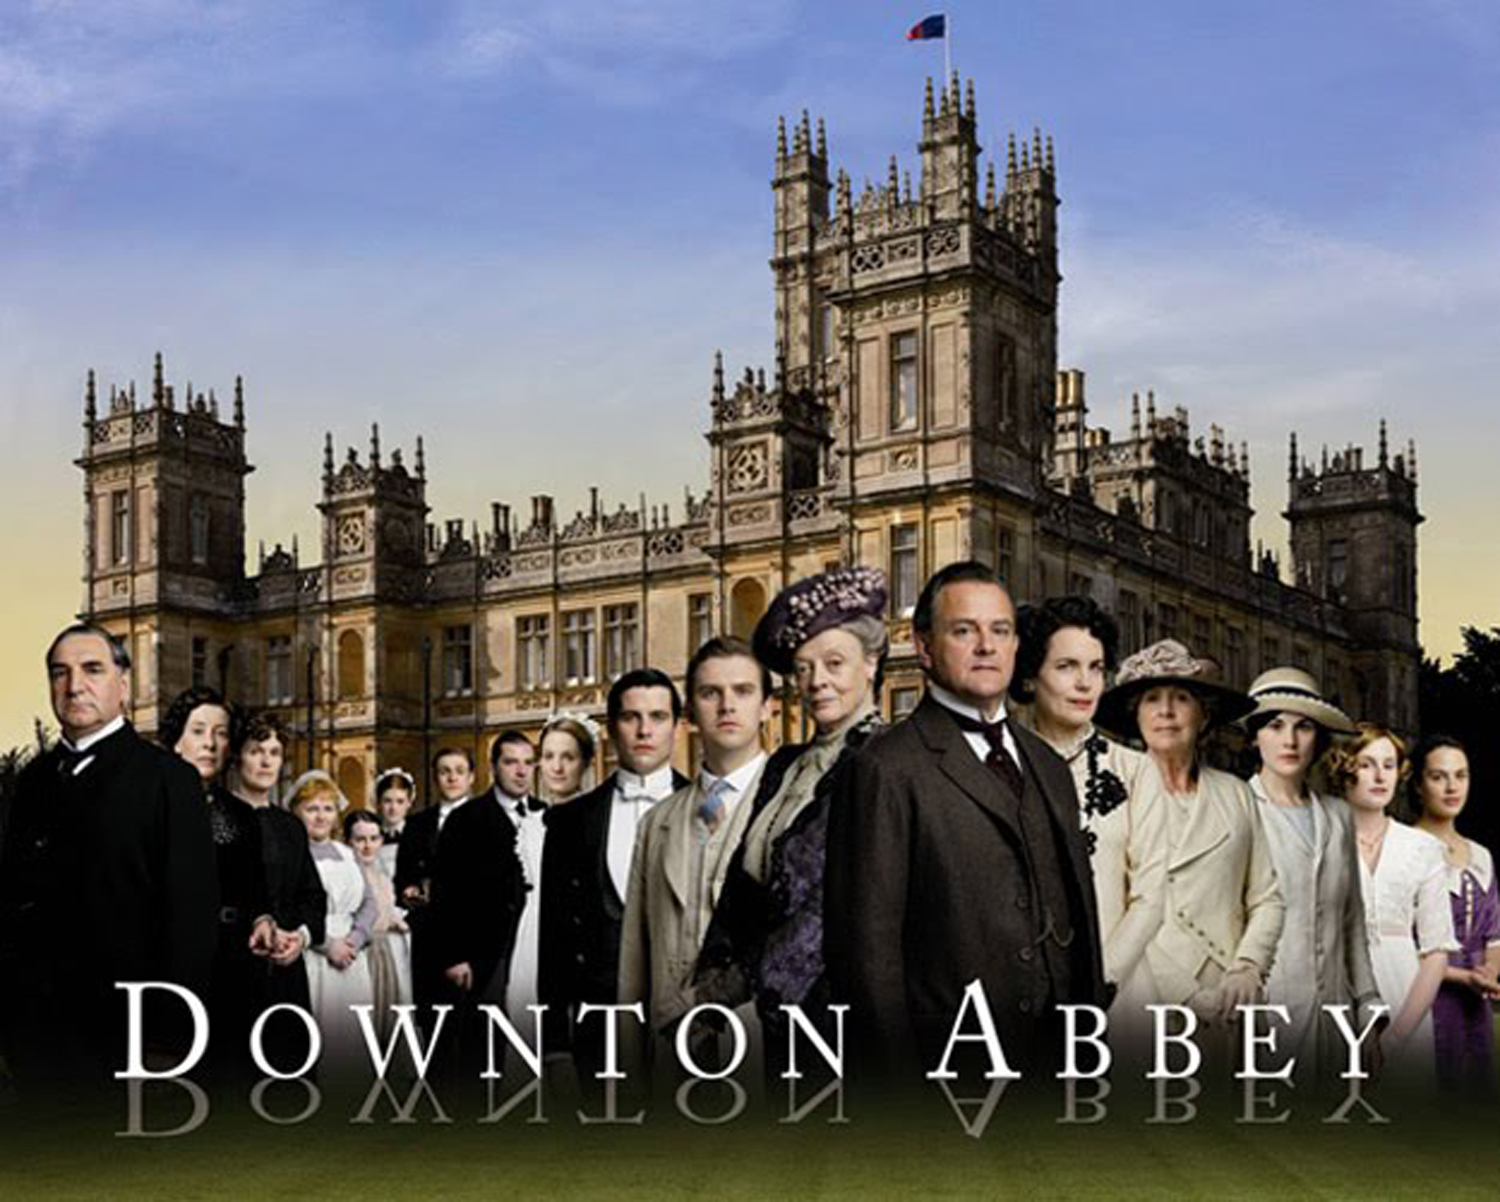 downtonabbey5b15d